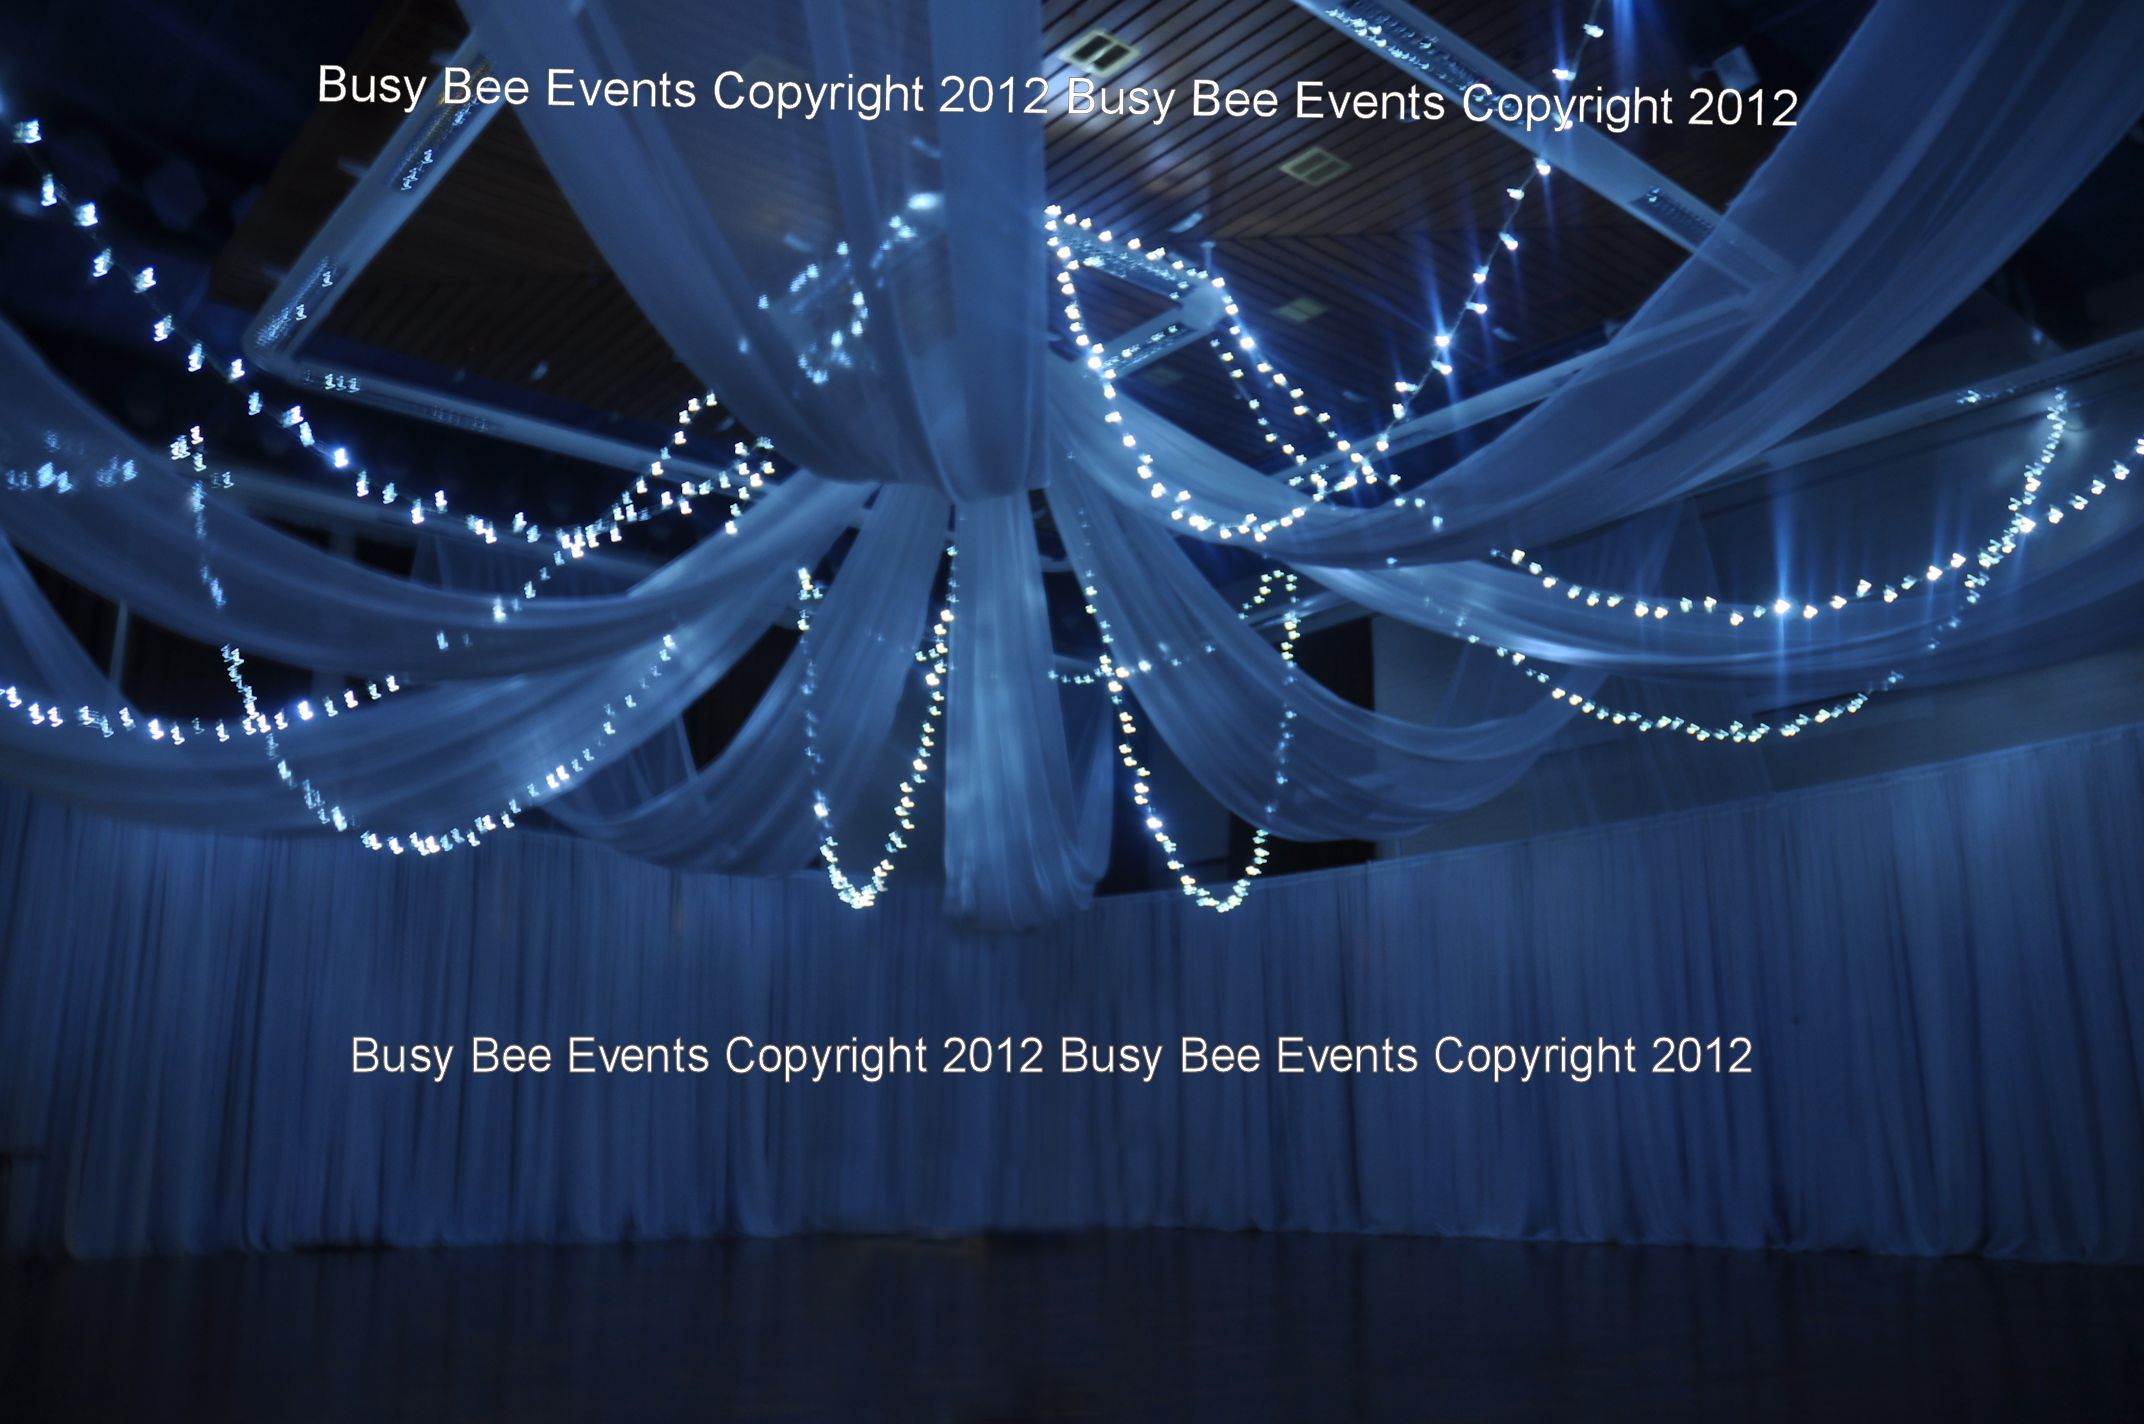 ceiling drapes how pinterest party events wedding reception to pin hang for stuff